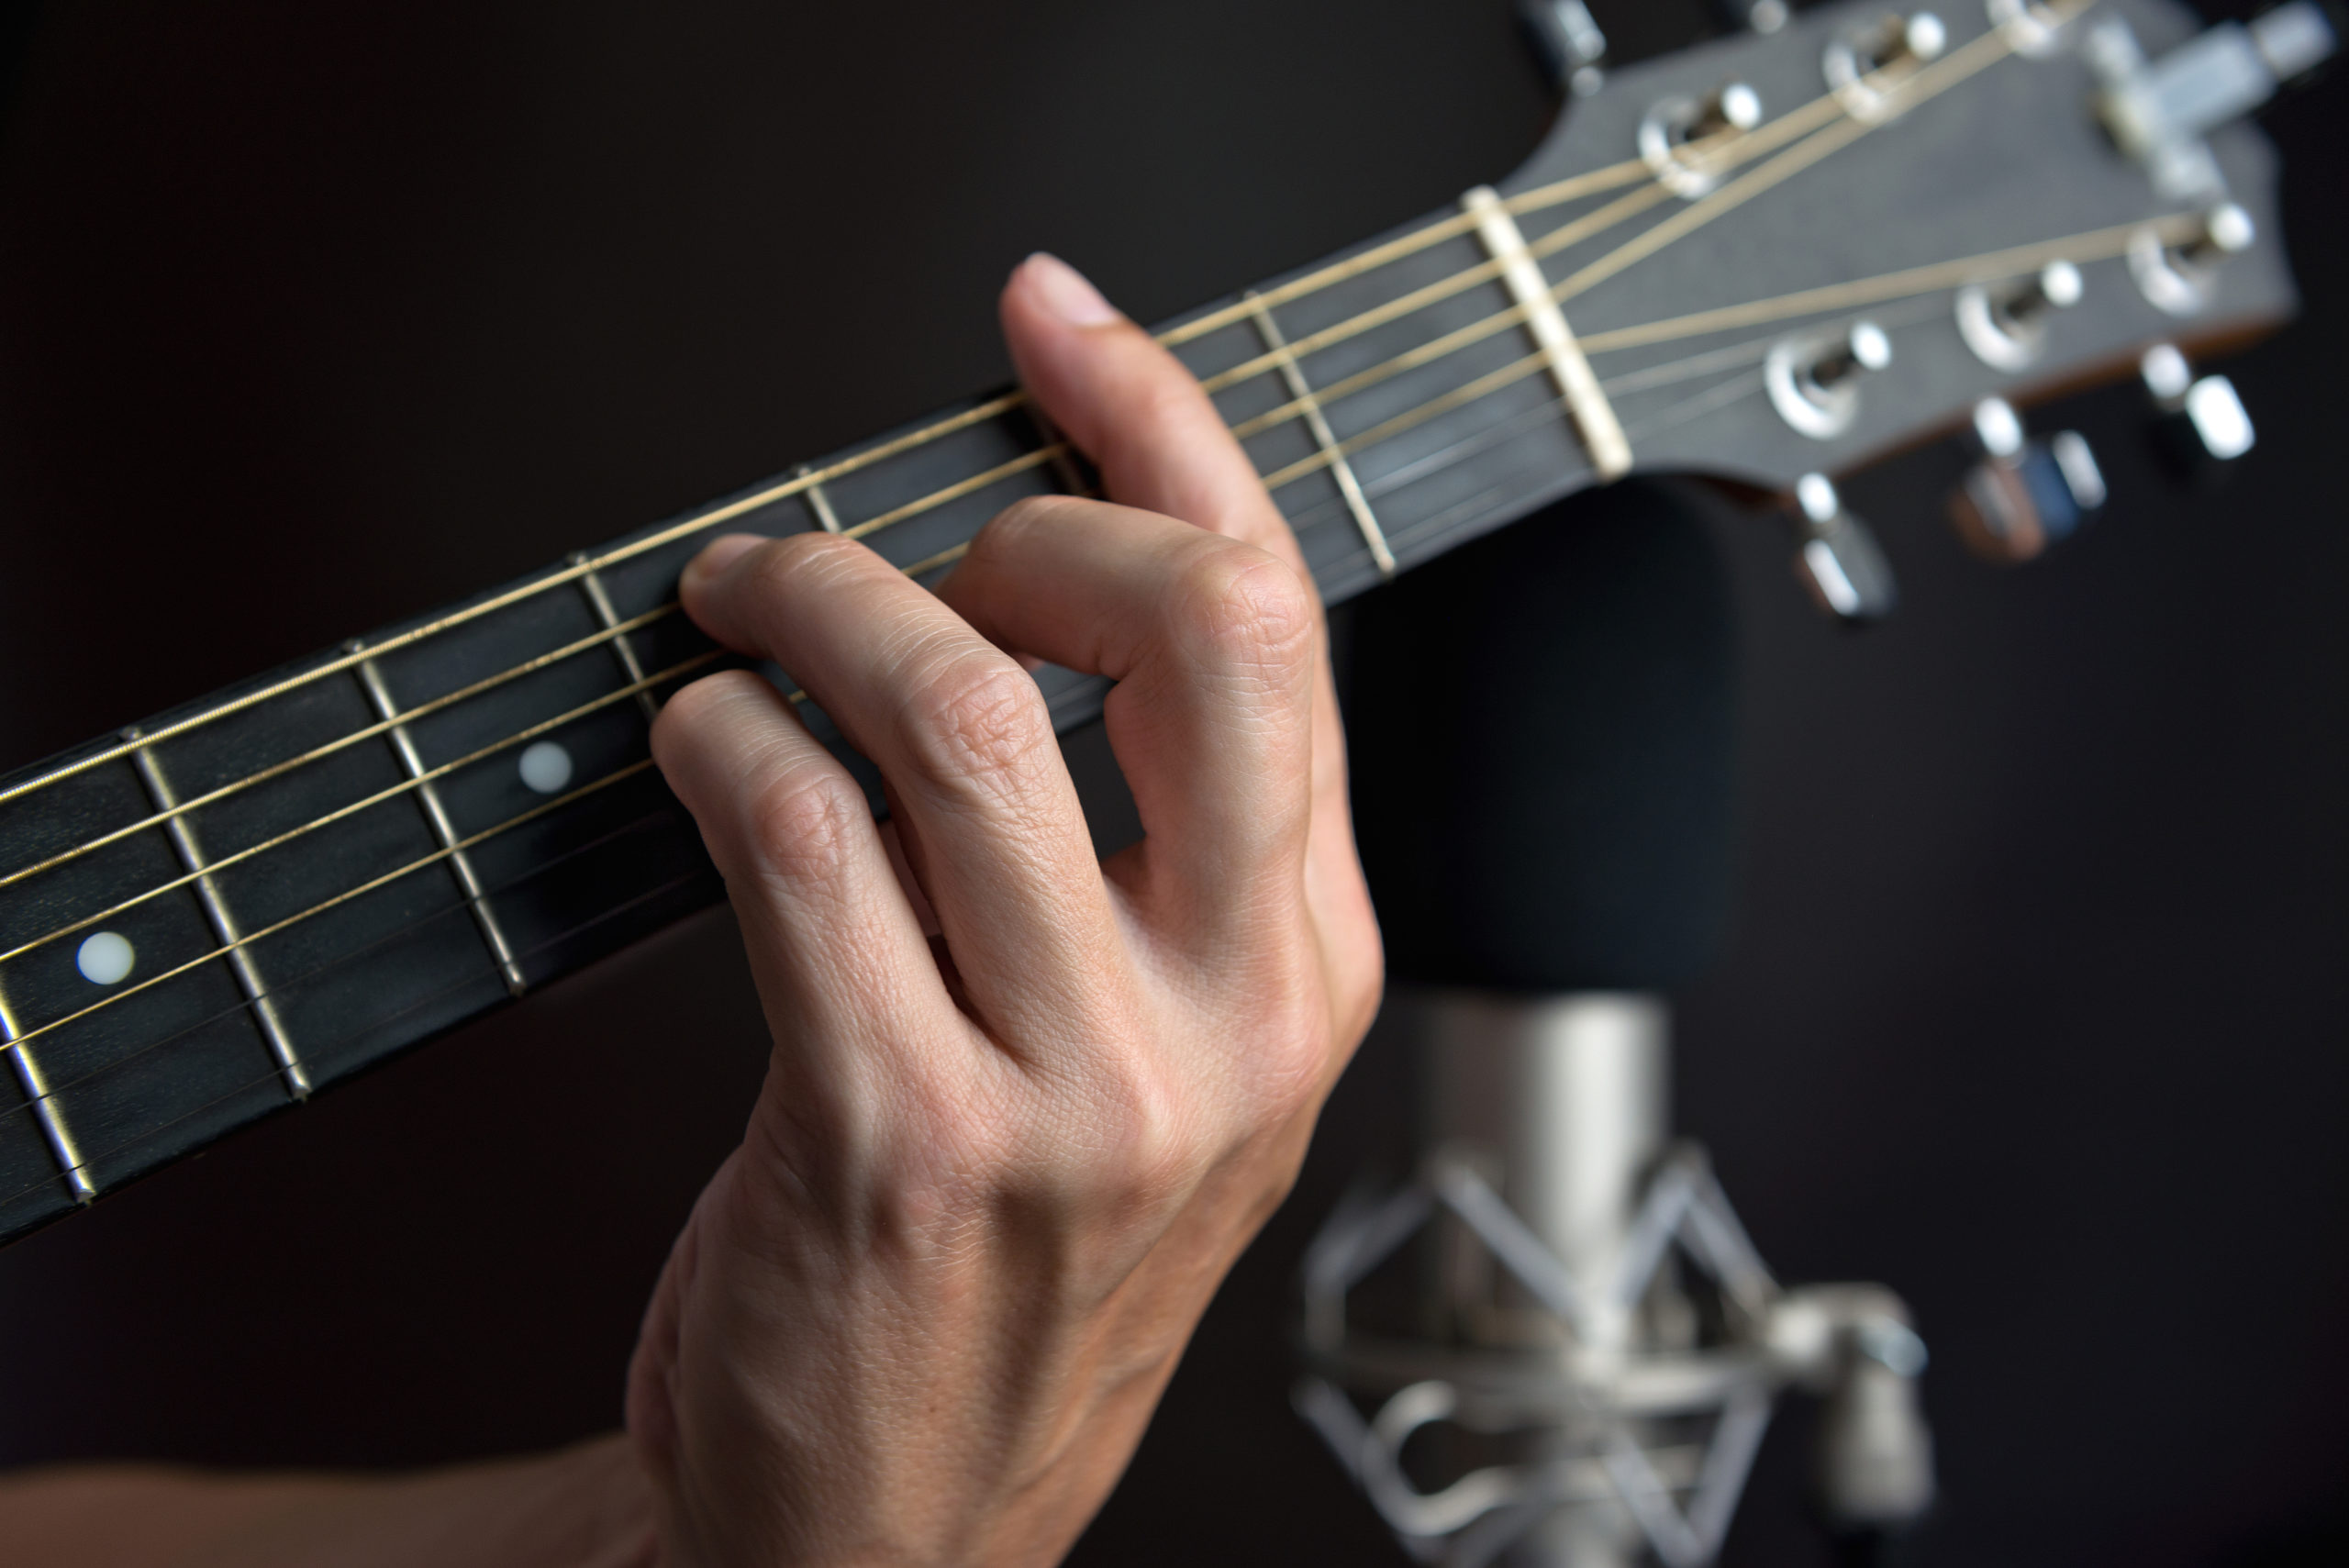 15 Ways to Simplify Barre Chords For Beginner Guitar Players